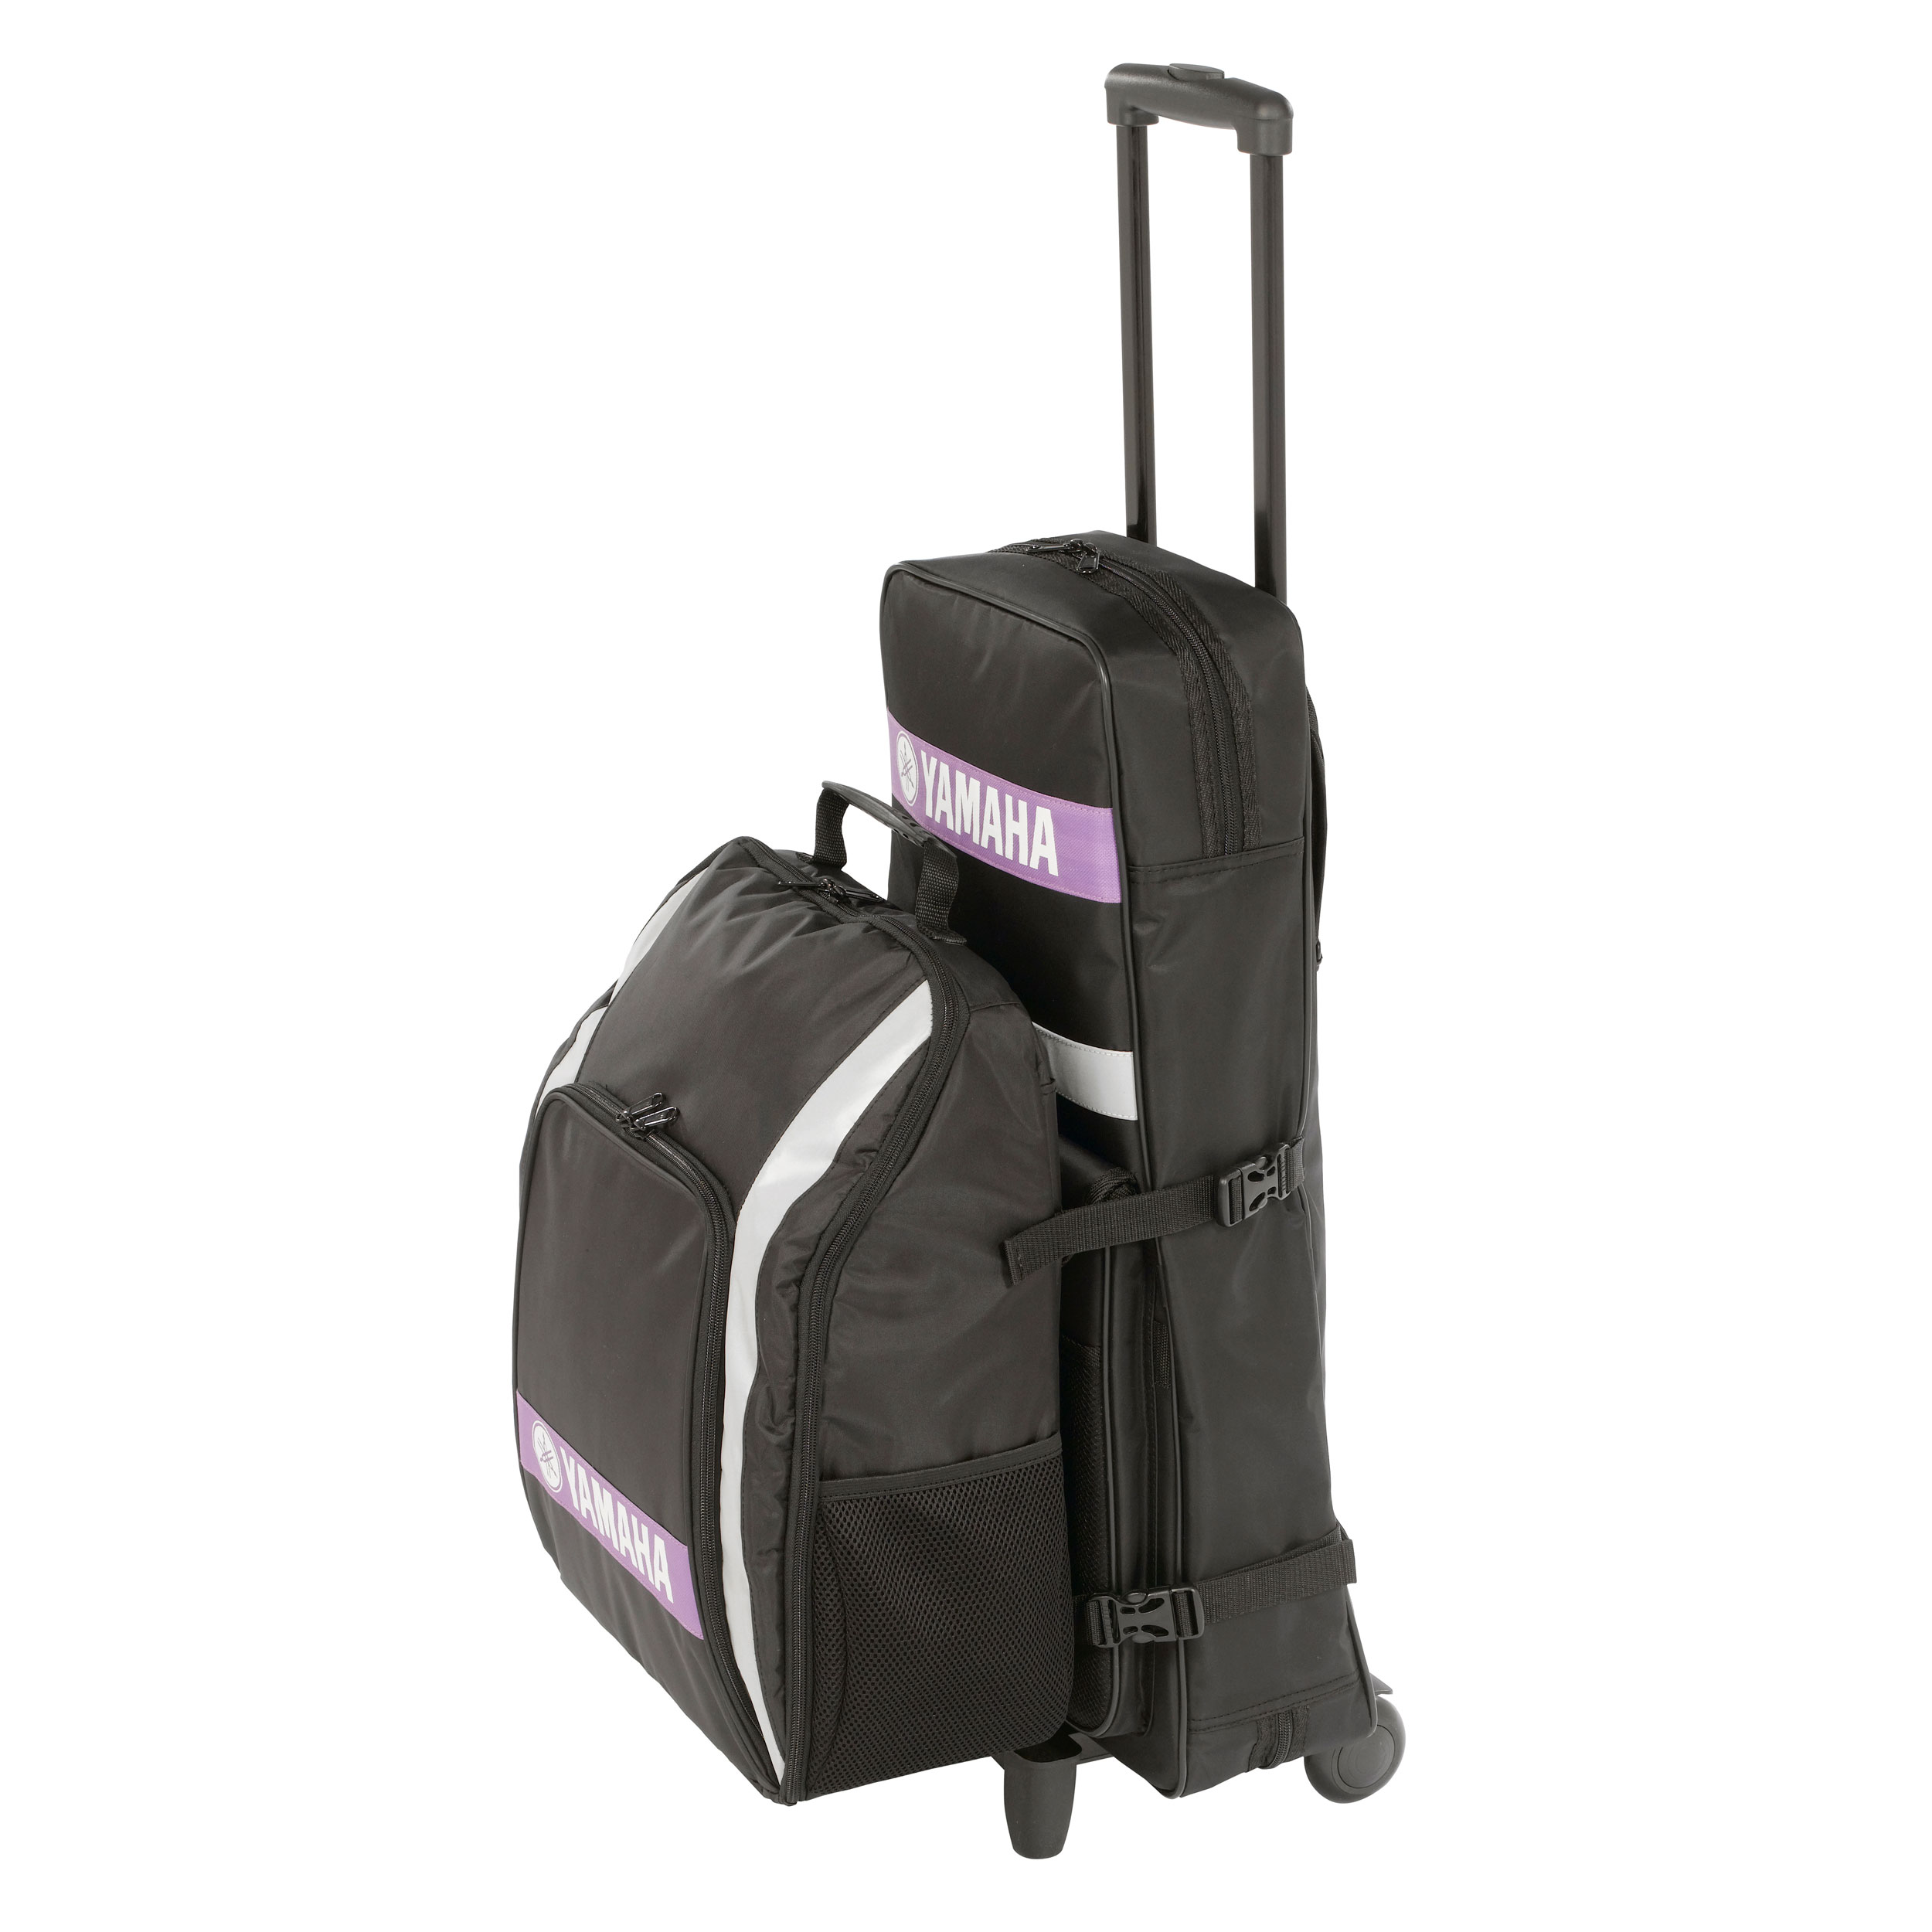 Yamaha student percussion kit sck 275r for Yamaha student bell kit with backpack and rolling cart